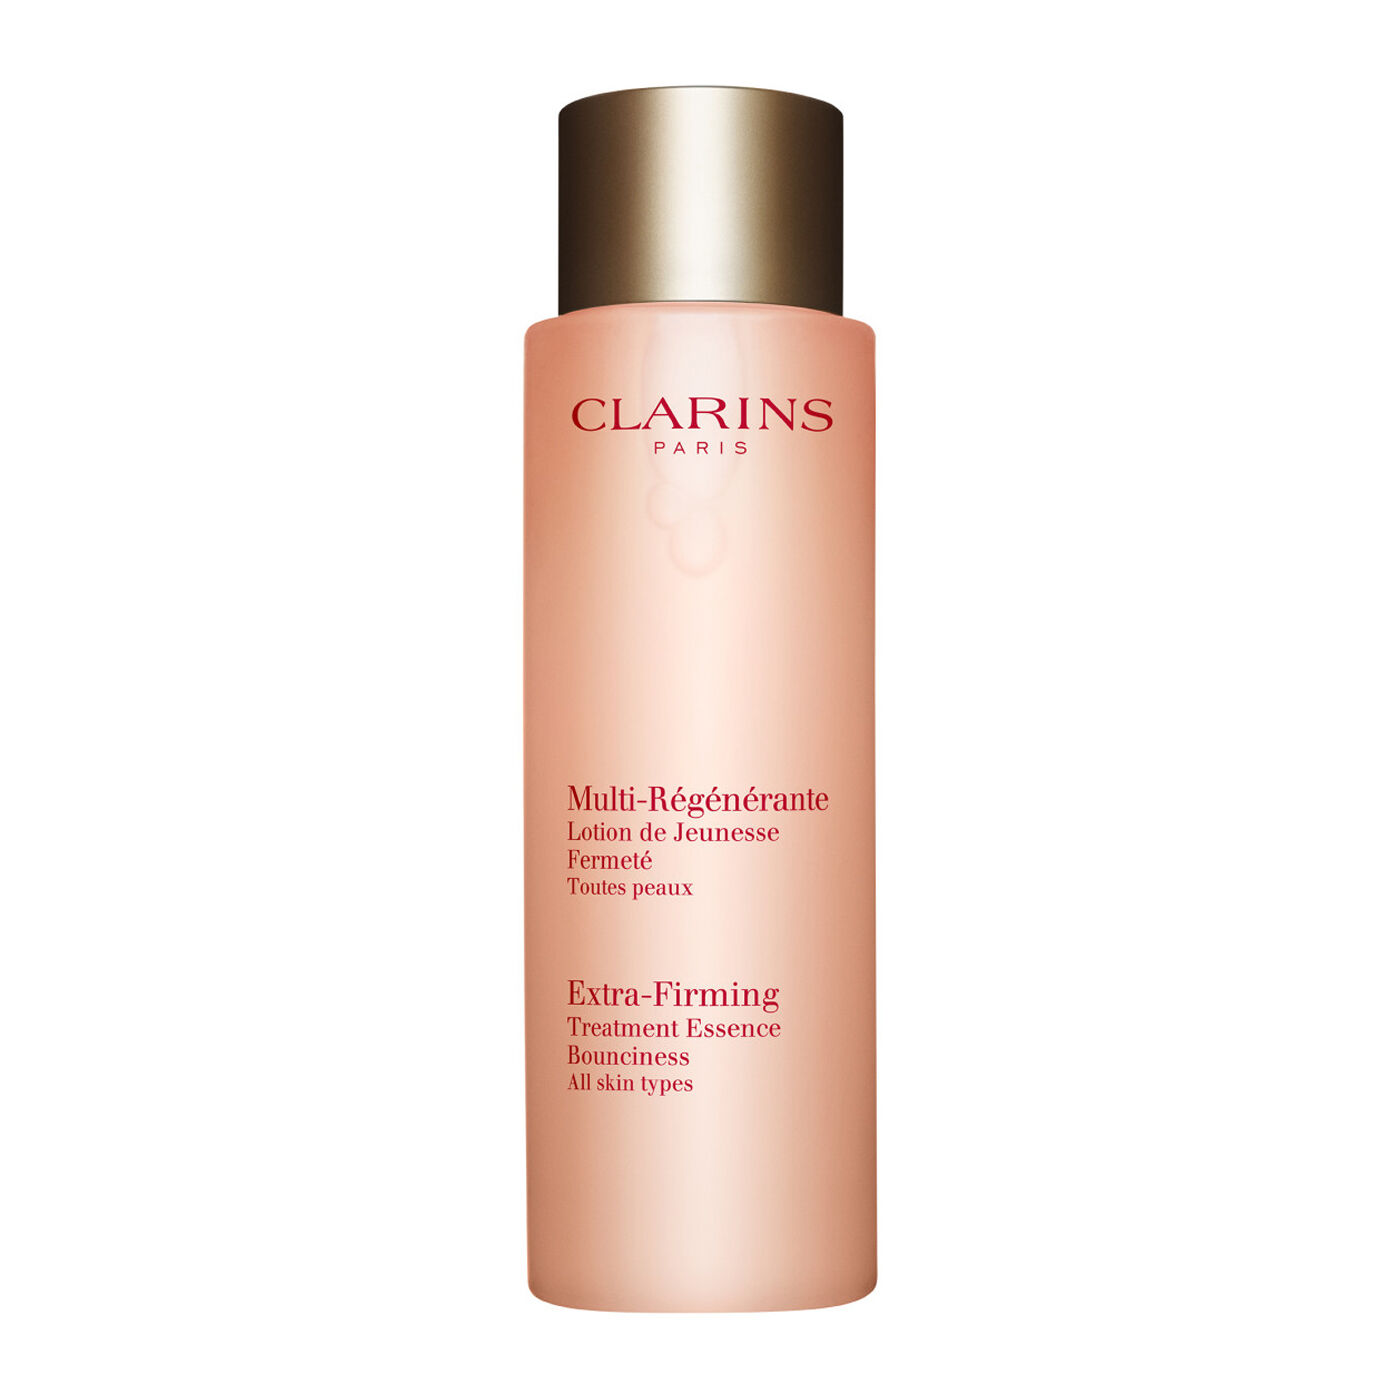 Extra Firming Treatment Essence